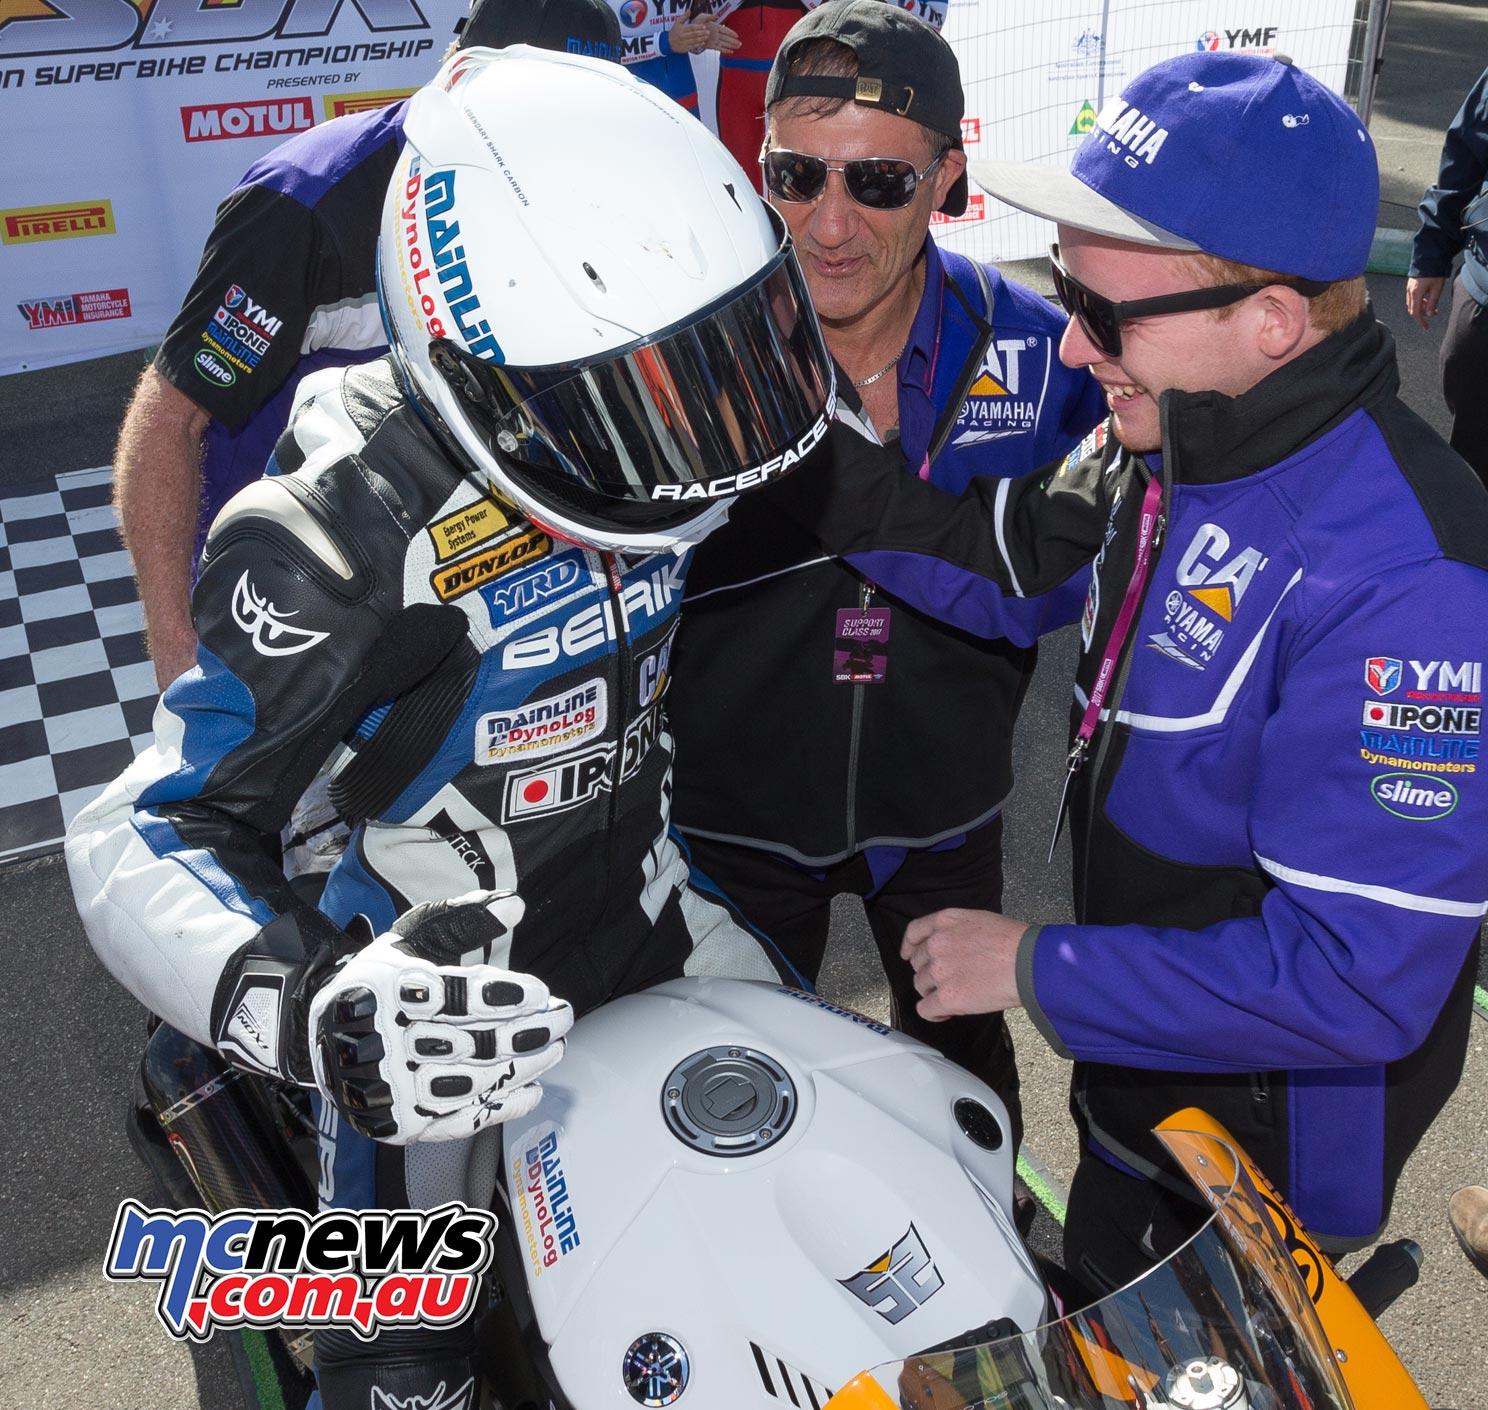 Daniel Falzon and team celebrate race one victory